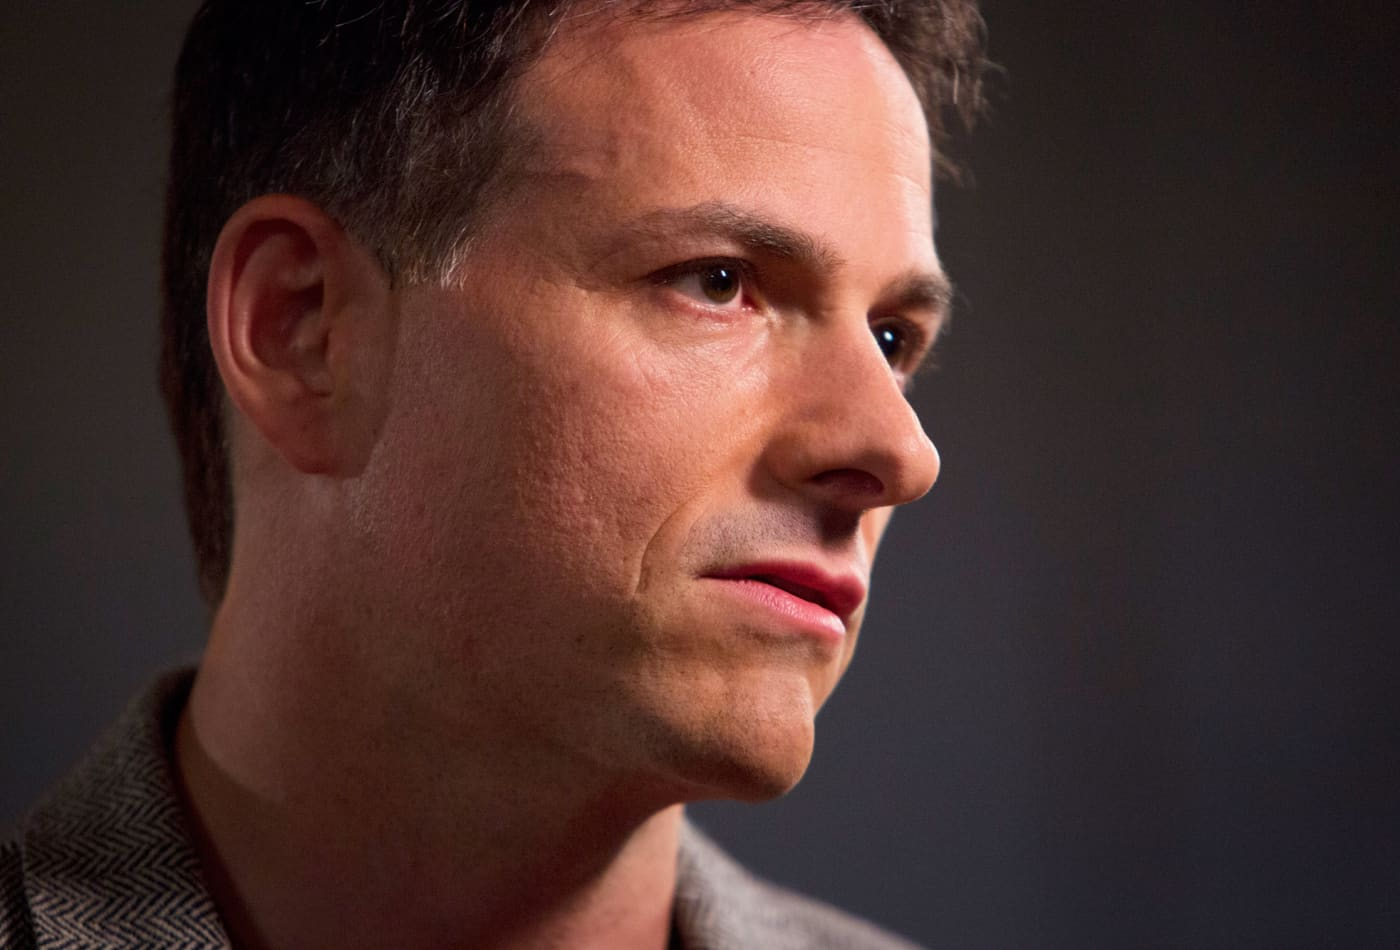 Hedge fund all-star David Einhorn posts his worst year ever, losing 34% in 2018